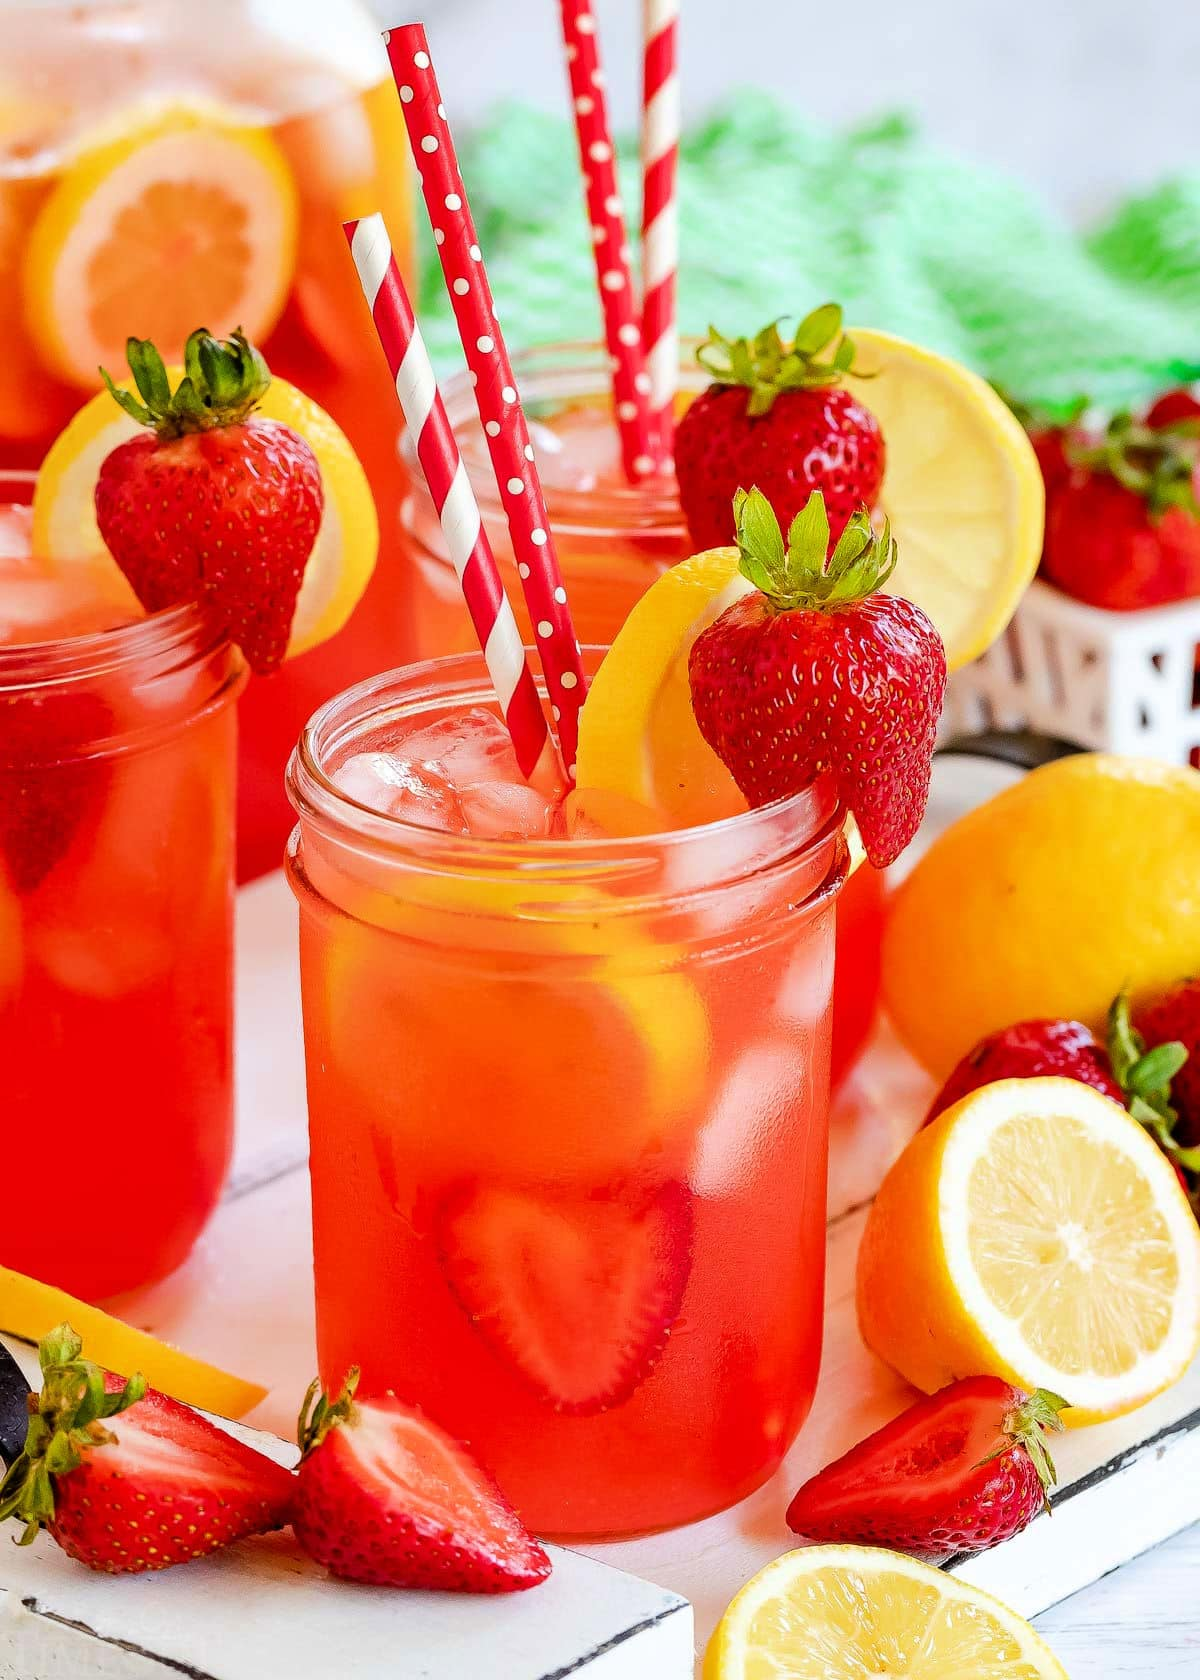 three mason jars filled with strawberry lemonade and topped with lemon slices and fresh strawberries. Red and white paper straws in jars.